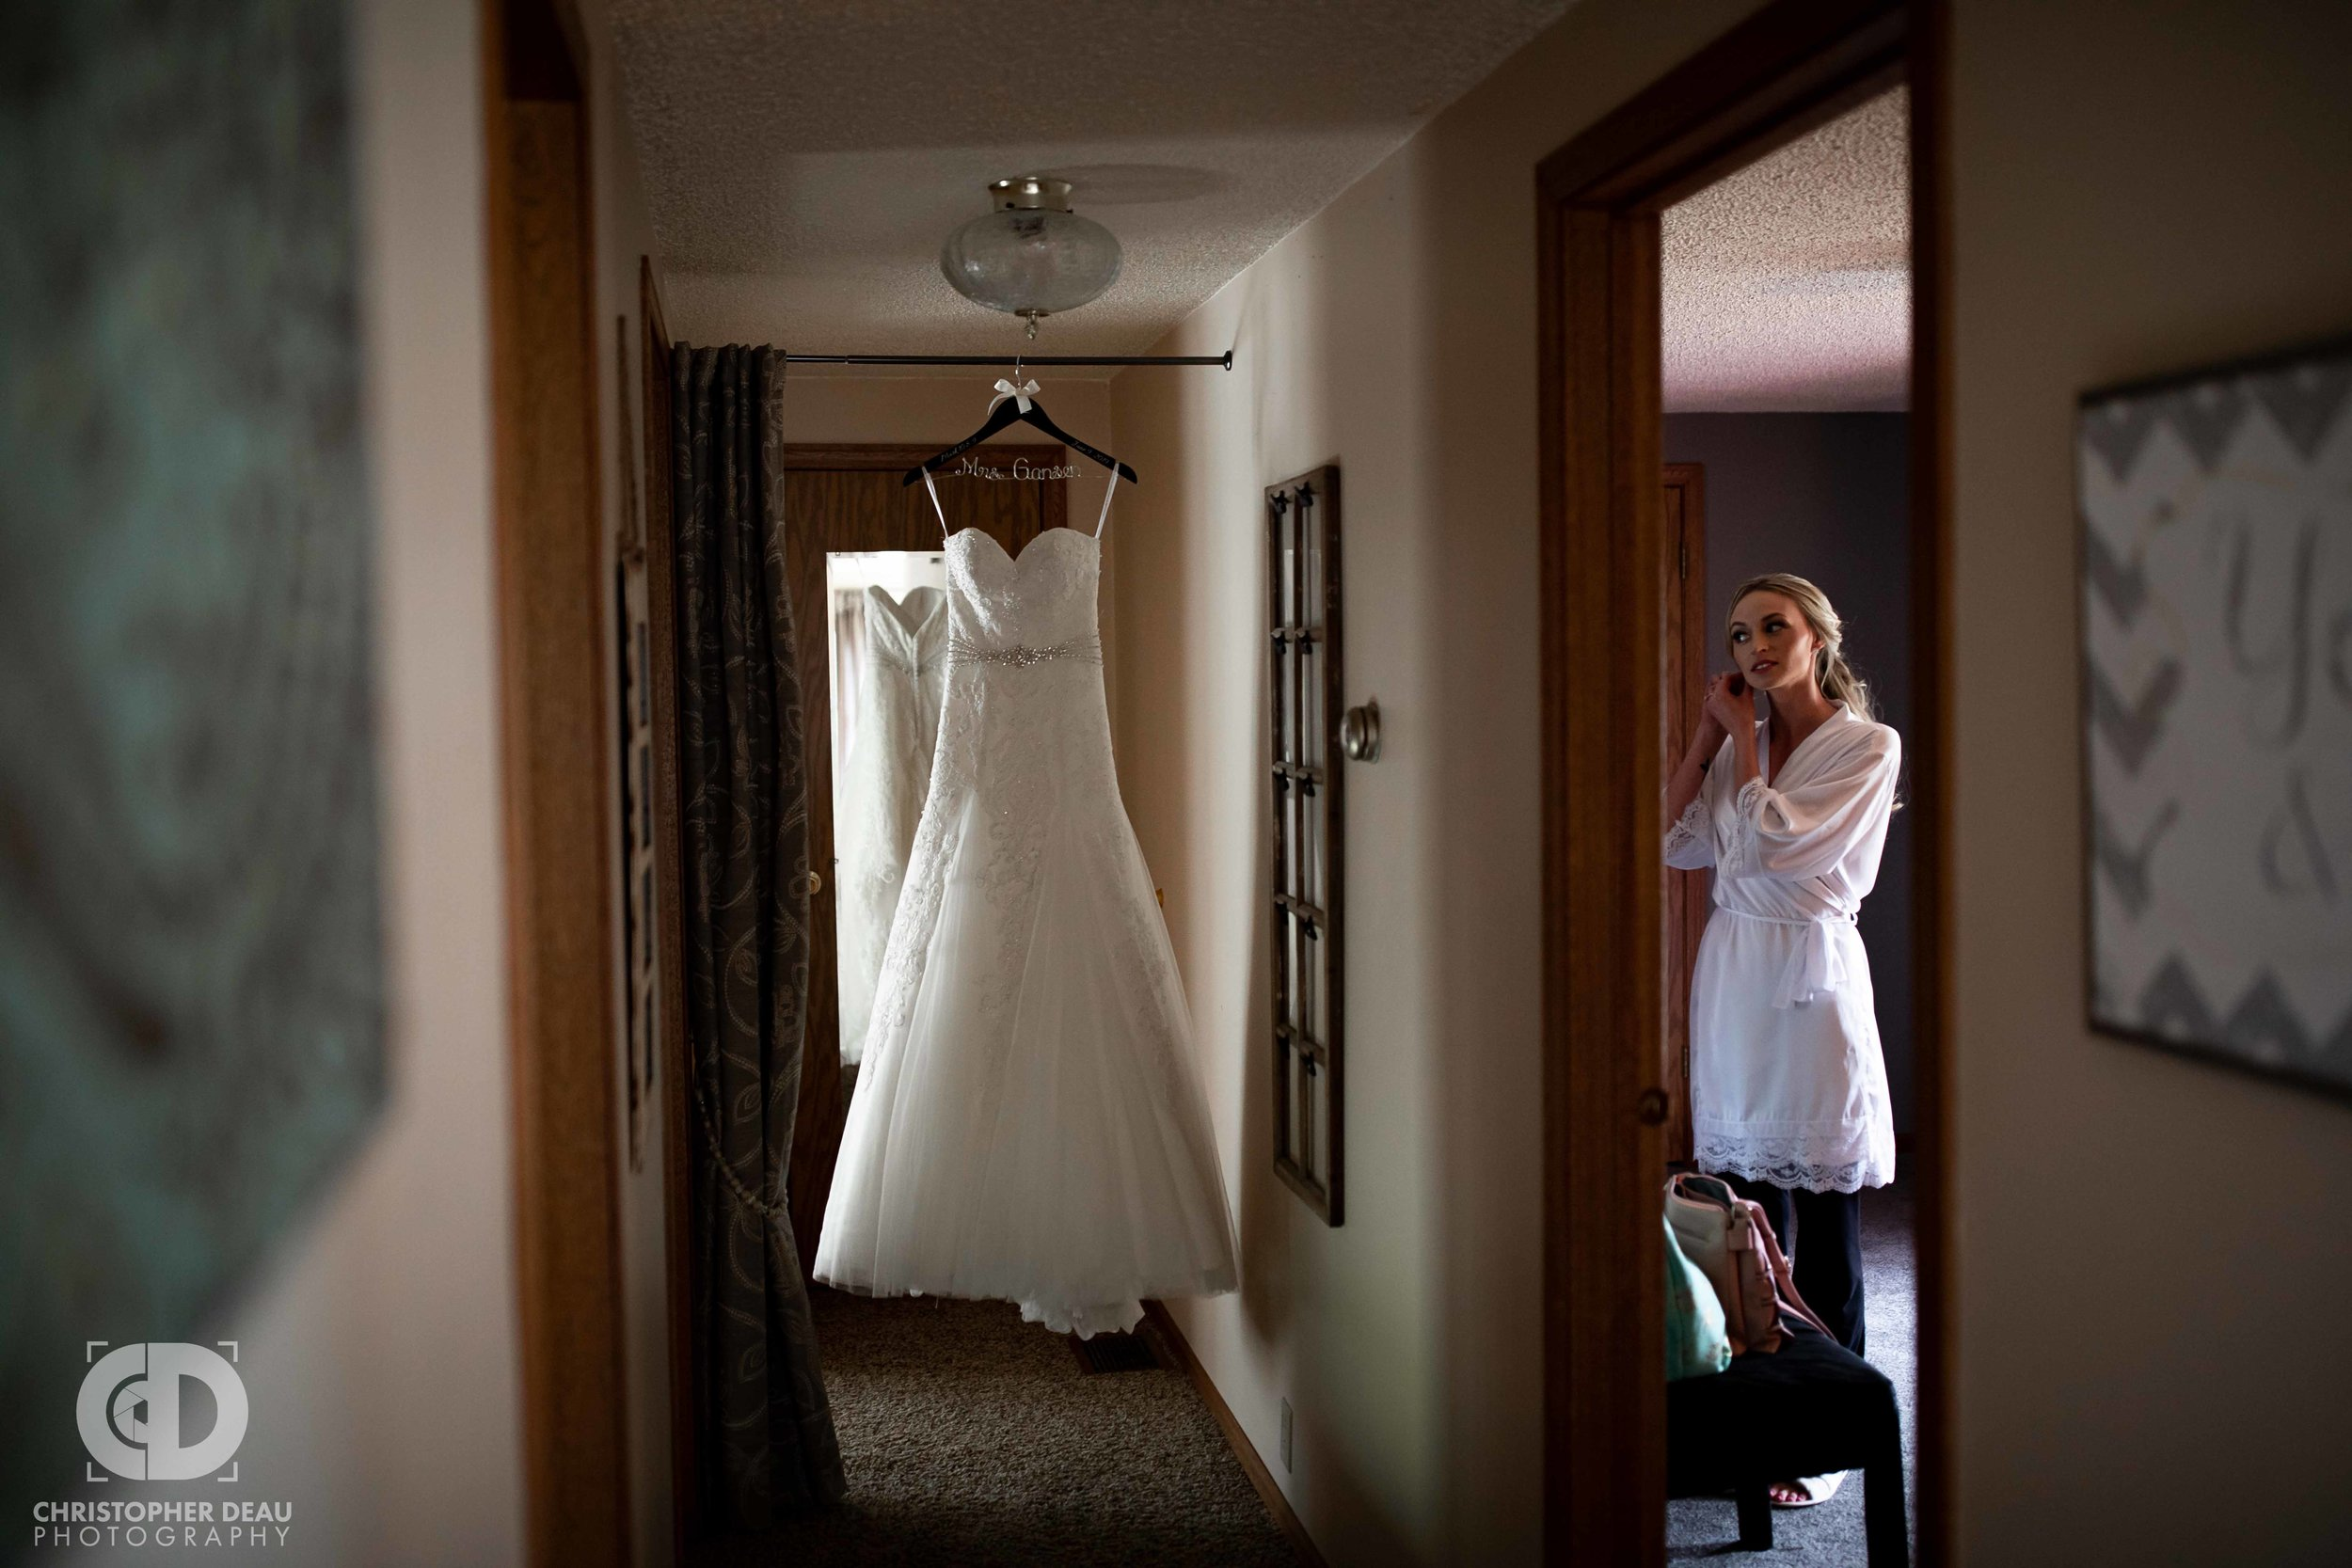 the brides wedding dress hanging in a hall